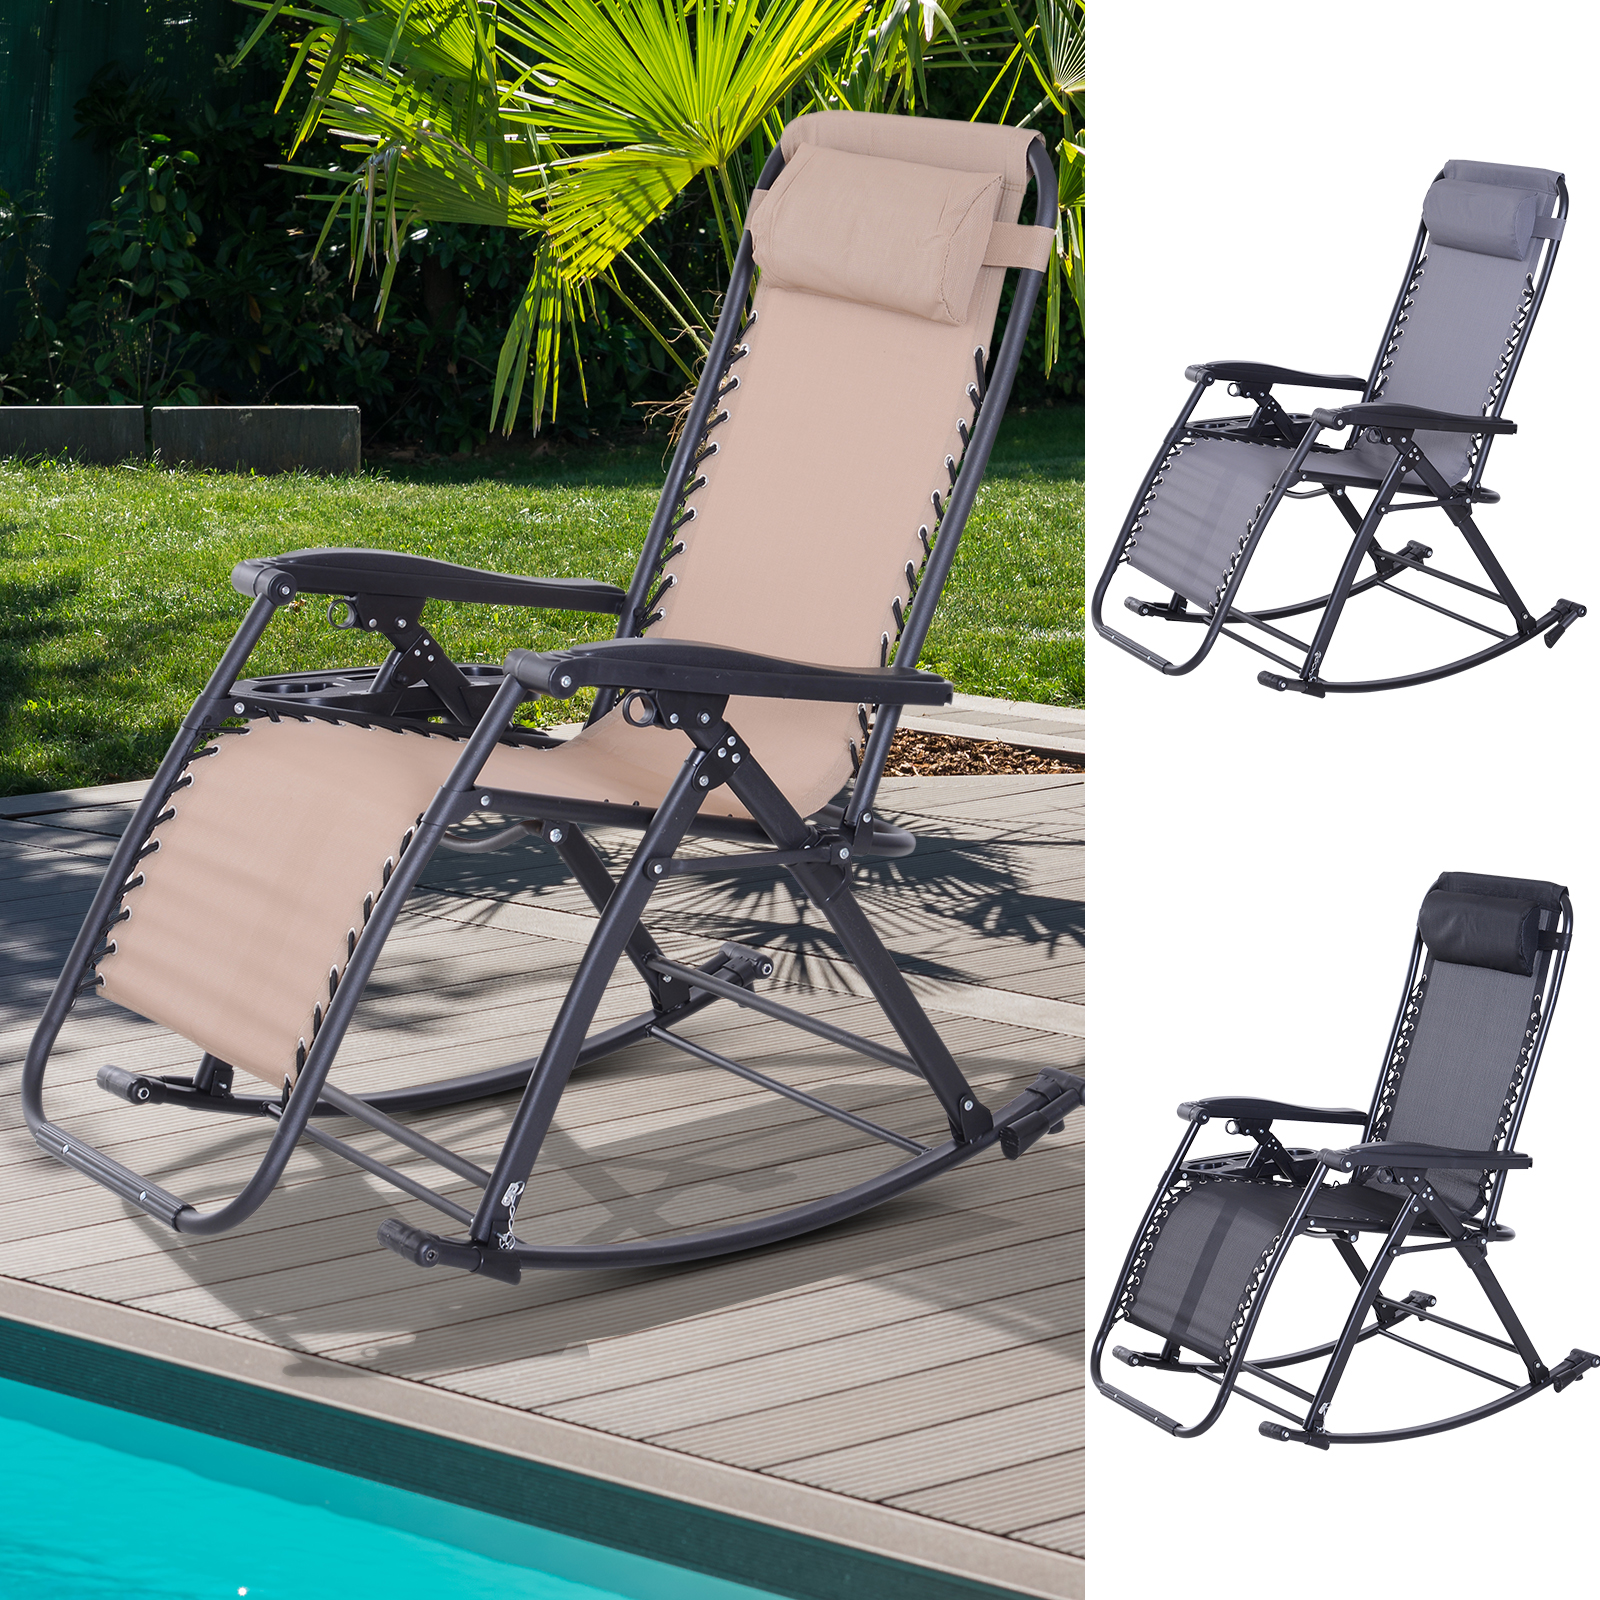 Swell Details About Zero Gravity Recliner Lounge Chair Patio Rocker Home Outdoor Napping Cup Holder Ocoug Best Dining Table And Chair Ideas Images Ocougorg